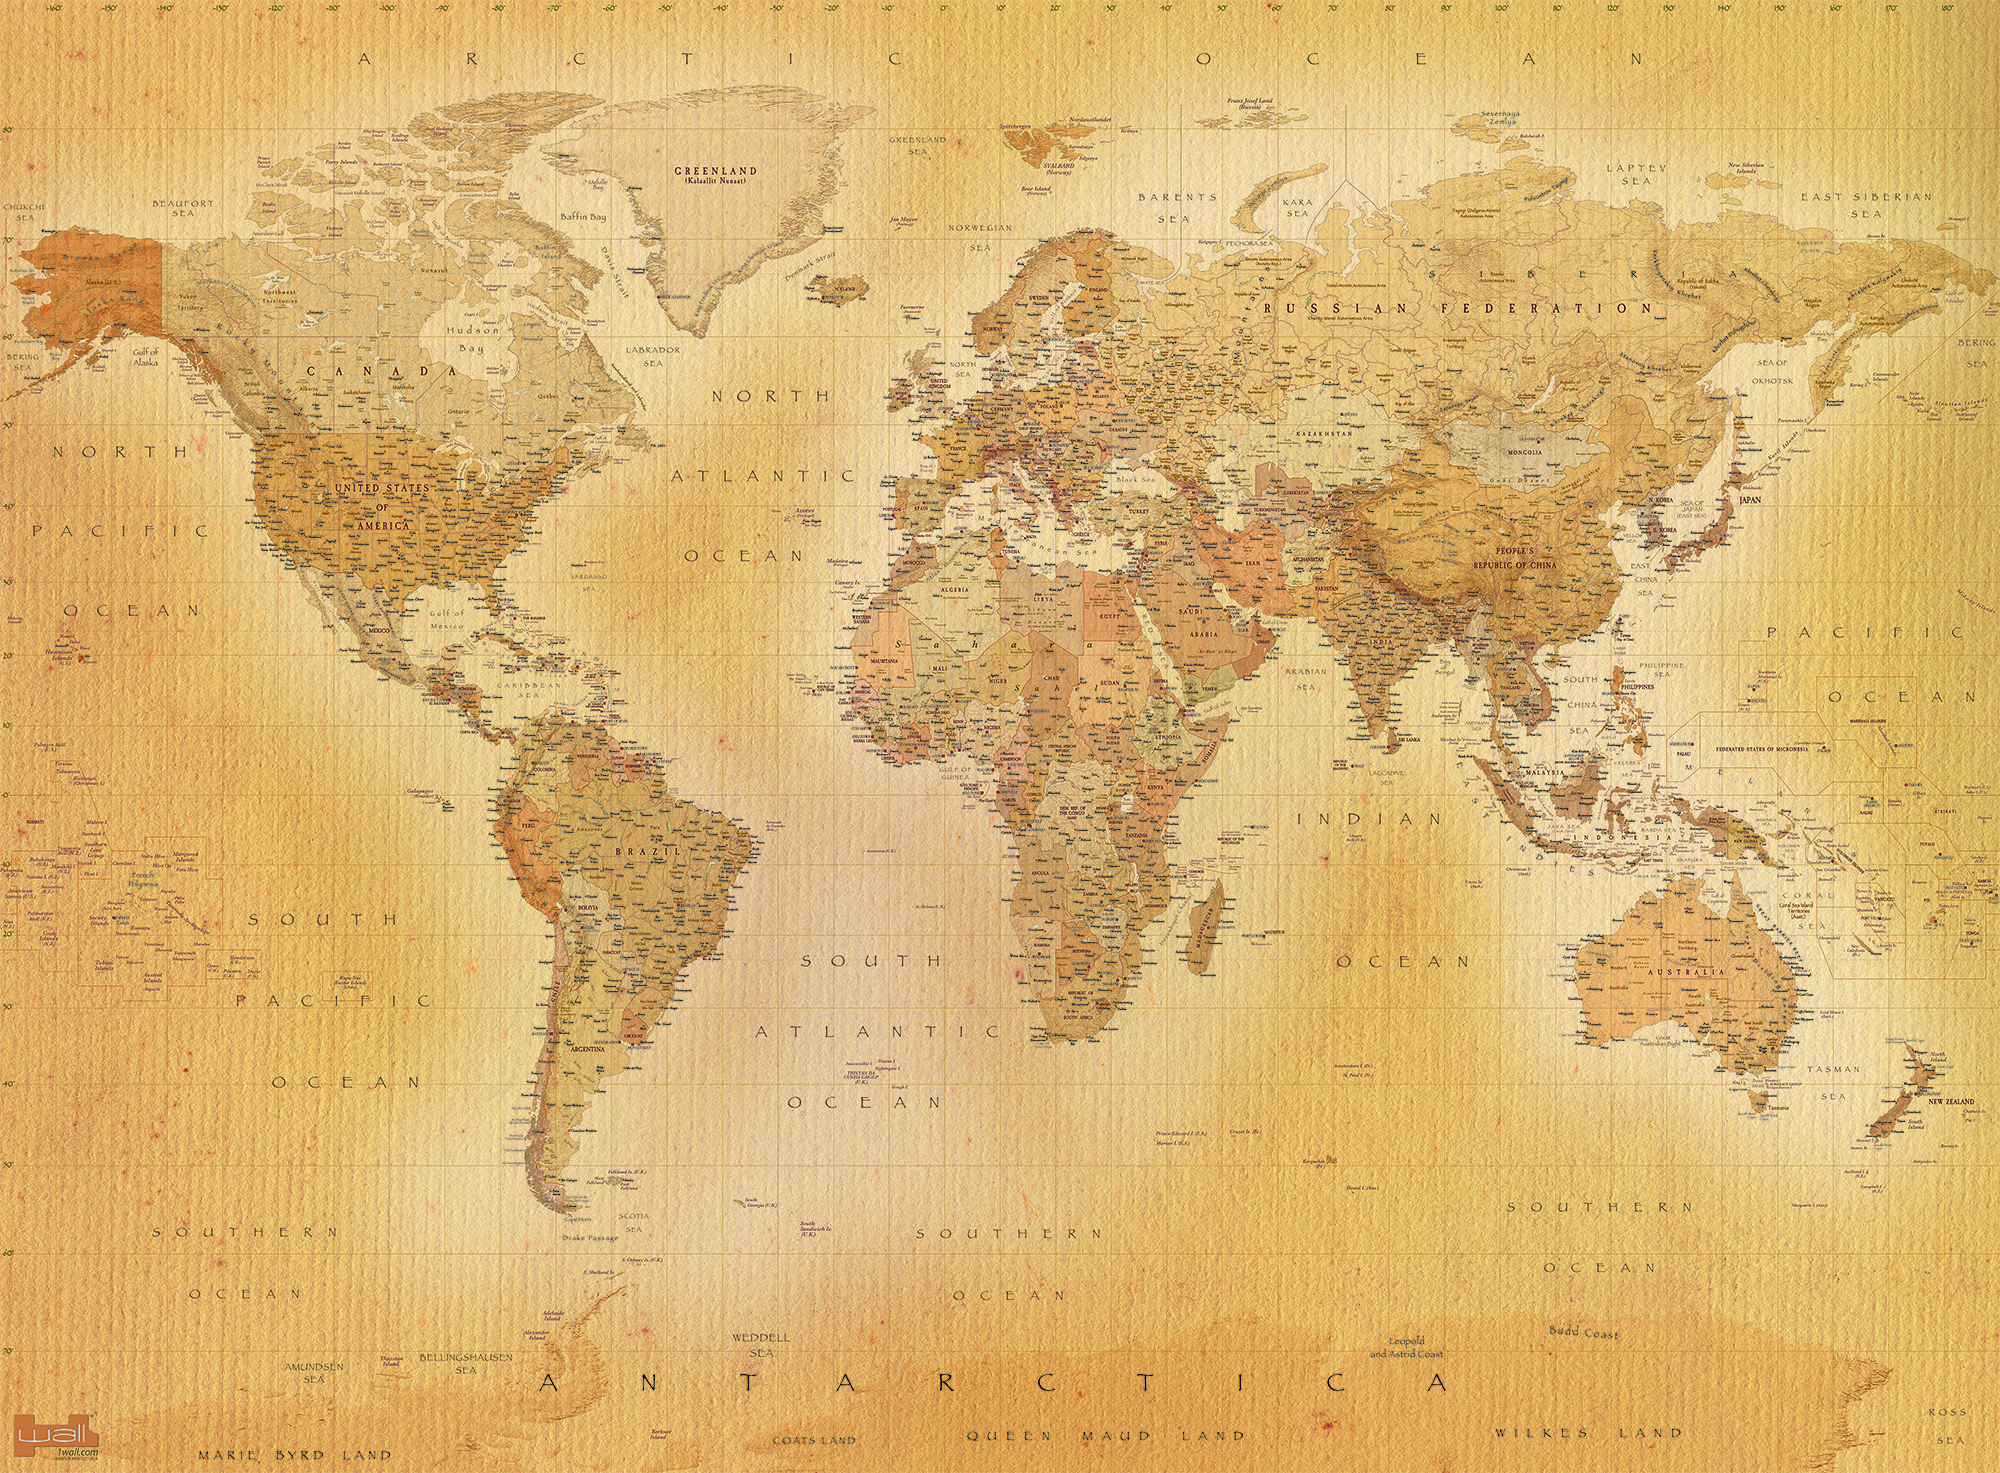 World map wallpaper hd pixelstalk w4pl tanvintage 001 best download world map wallpapers hd gumiabroncs Image collections